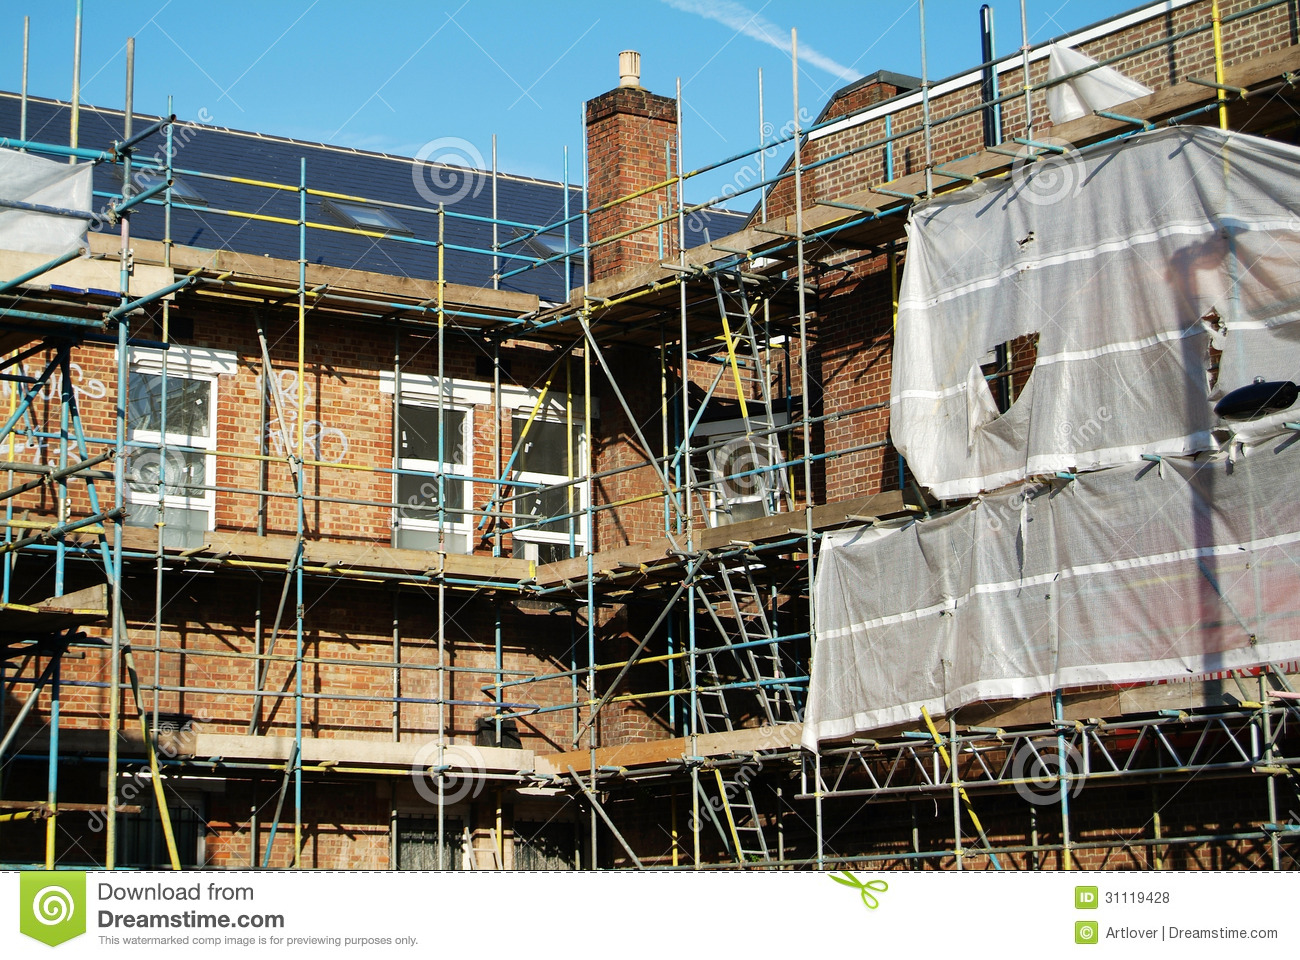 Construction site royalty free stock photos image 31119428 for Images of building sites